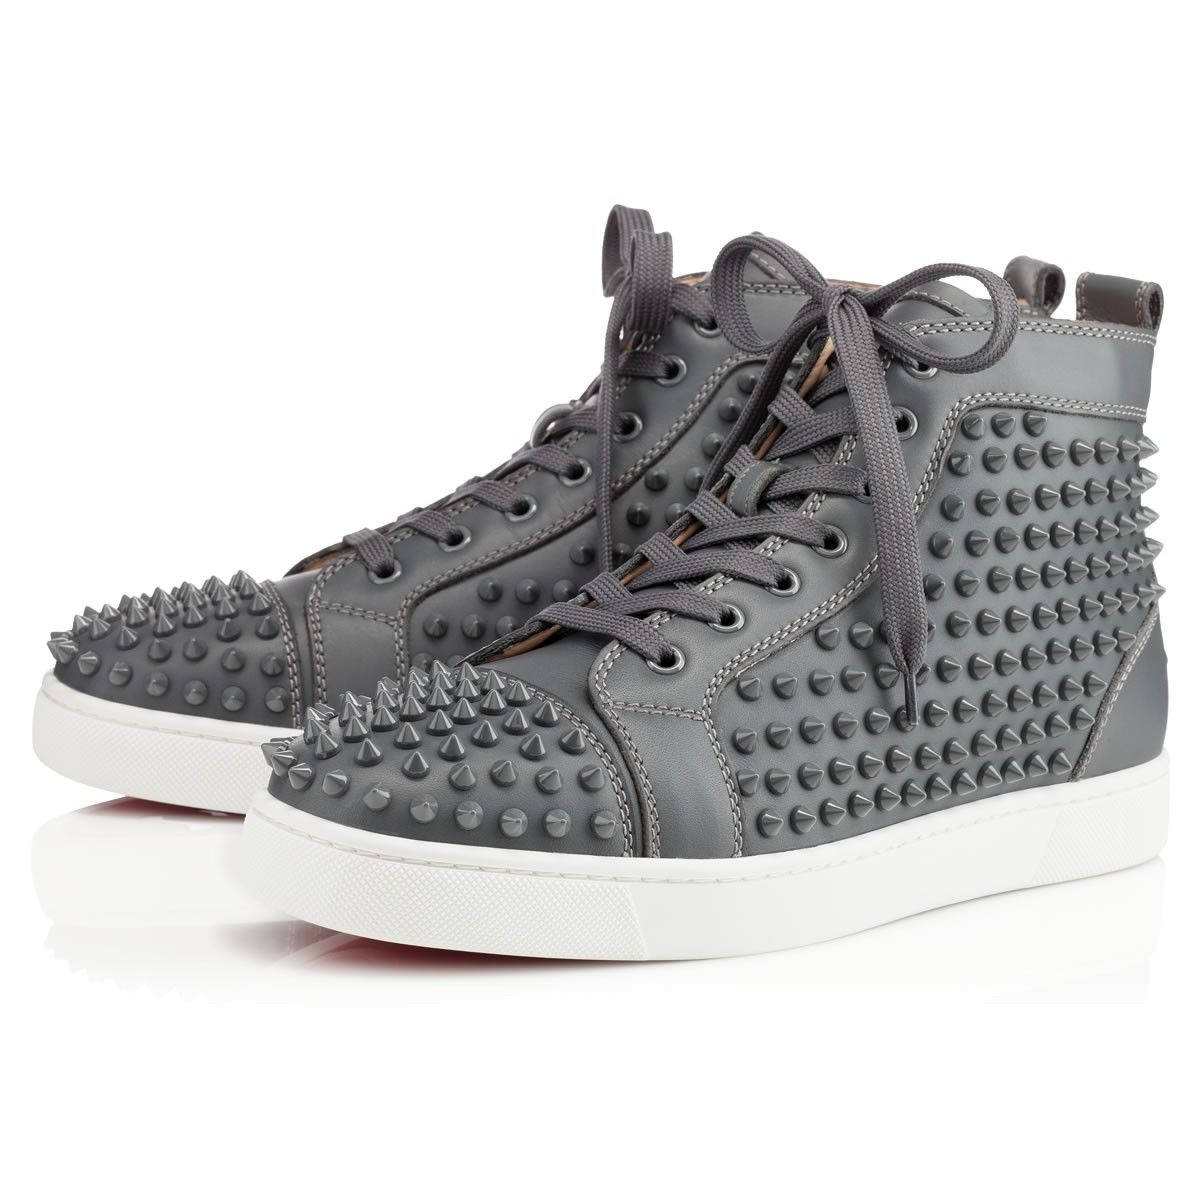 aldo shoes collection 2017 chaussures louboutin homme